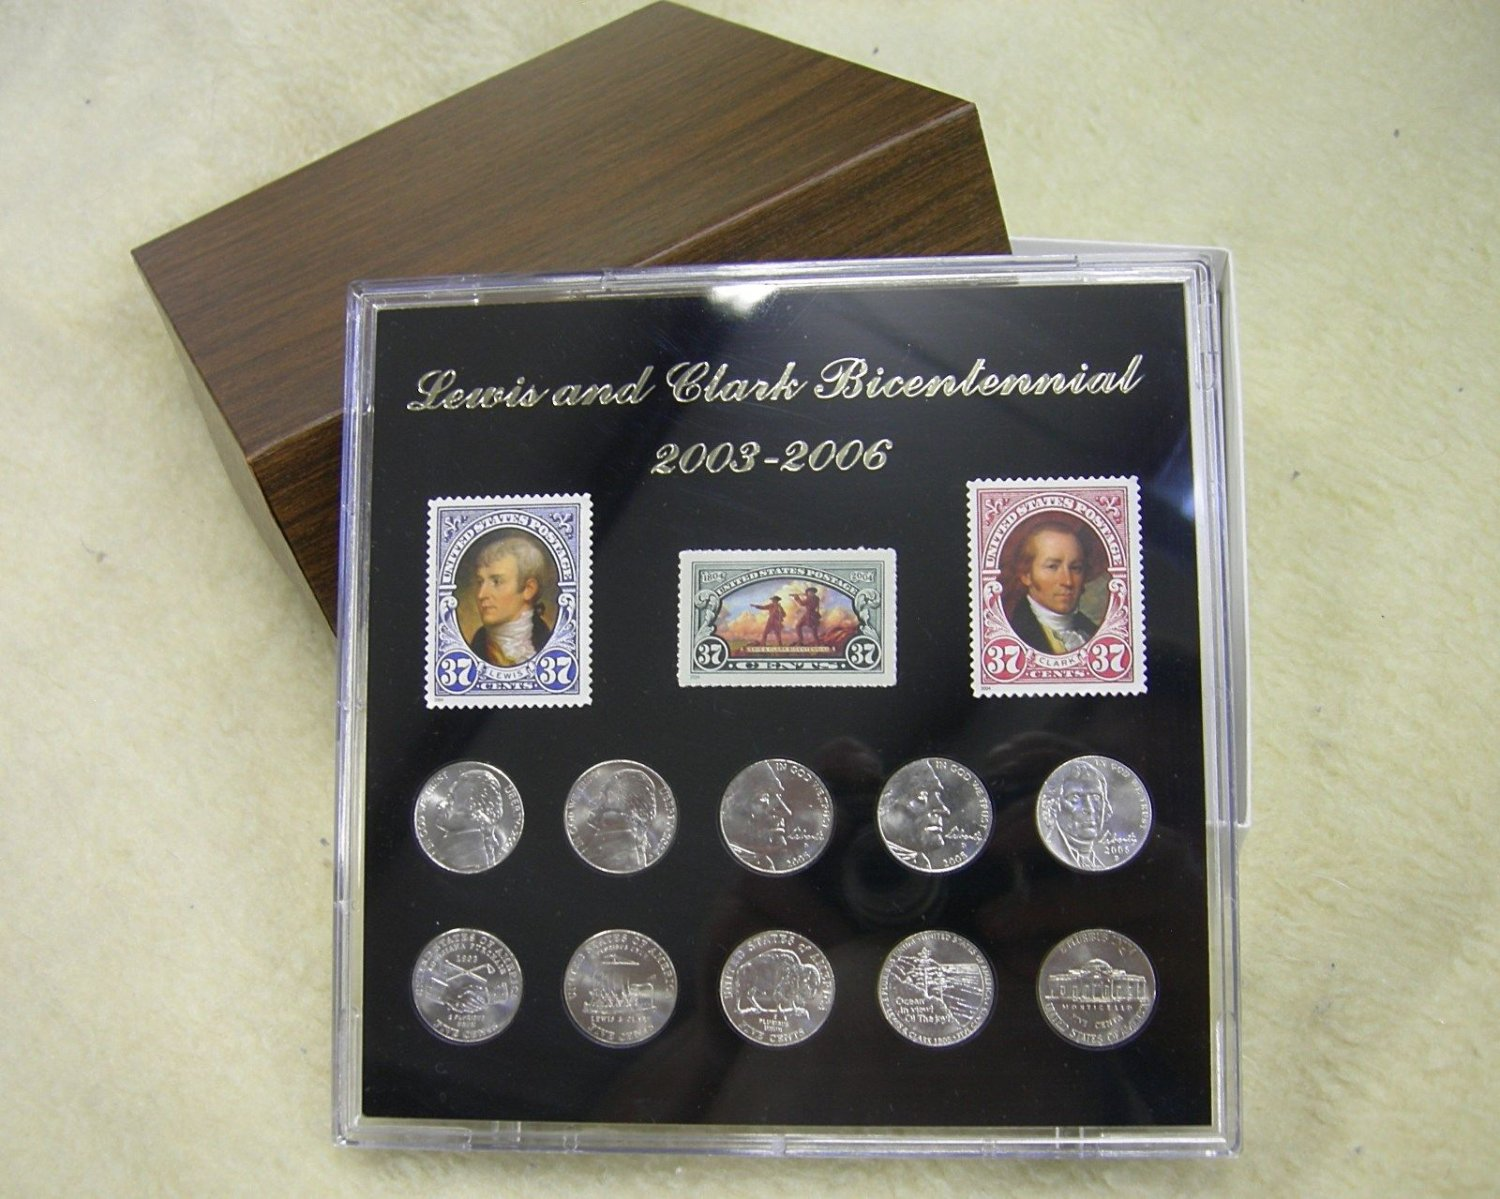 Lewis and Clark Limited Edition Bicentennial Coin and Stamp Collectors Gift Pack